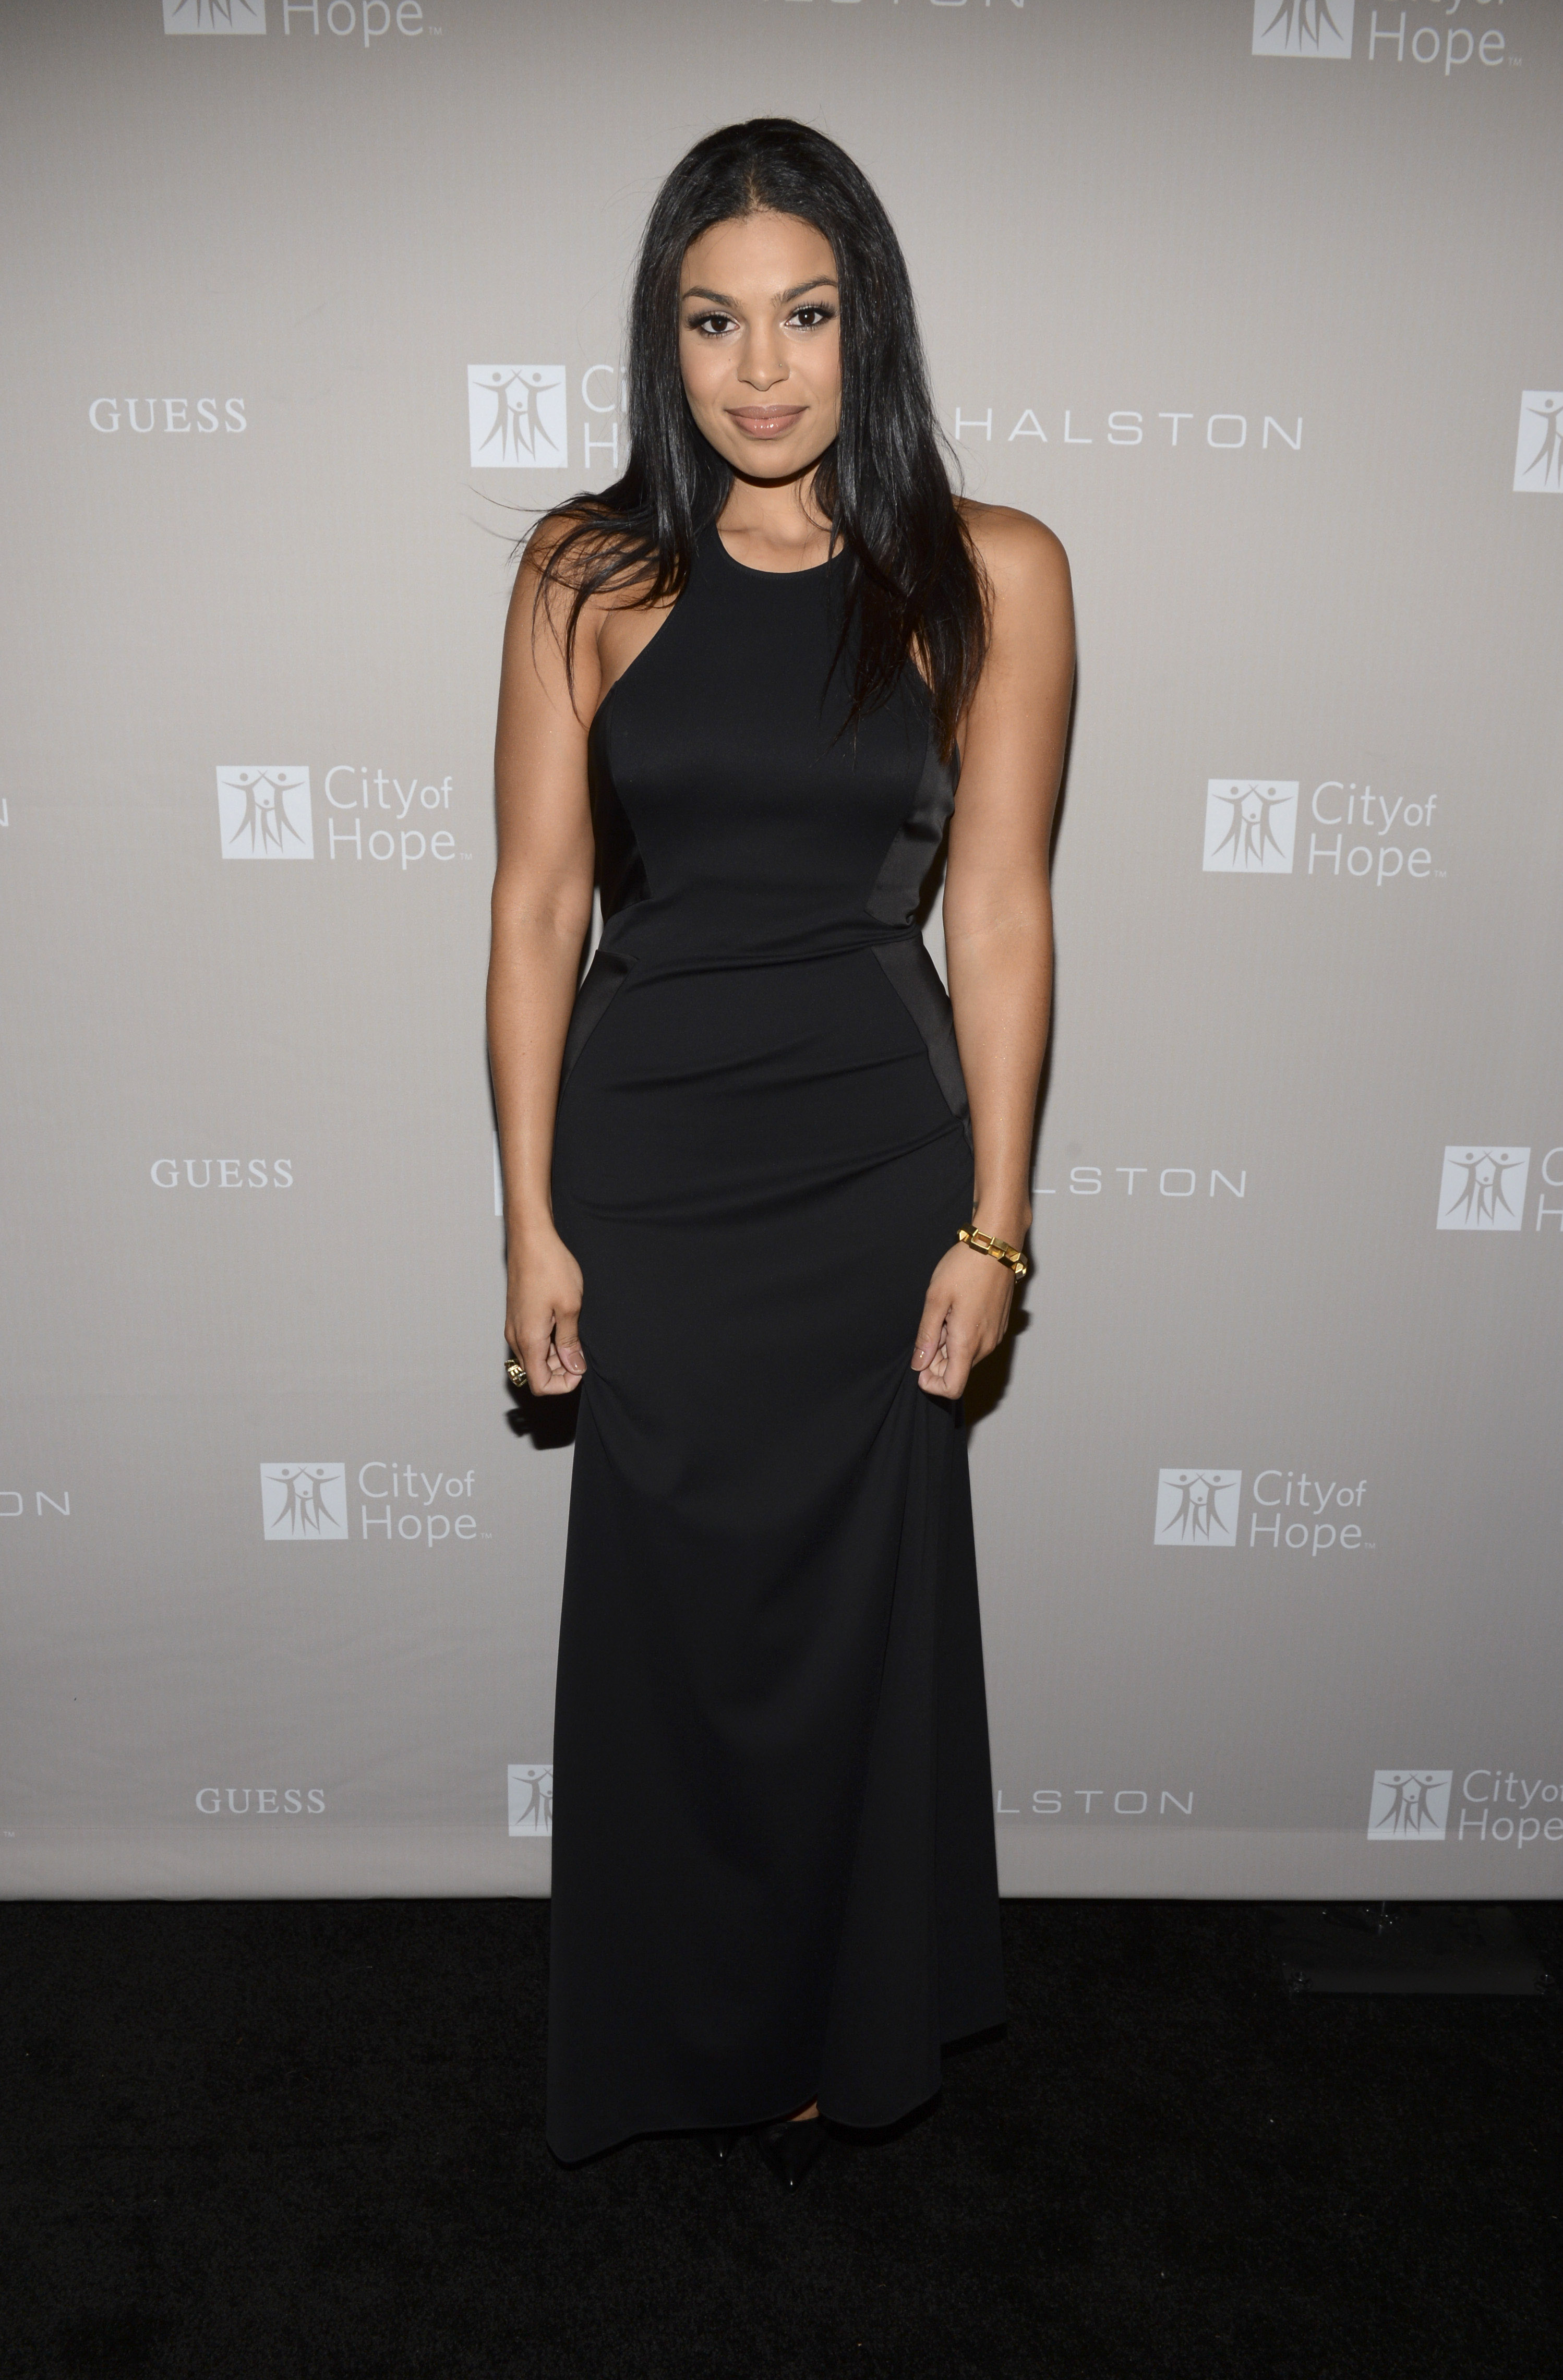 Jordin Sparks wore a full-length black dress to the gala in LA.